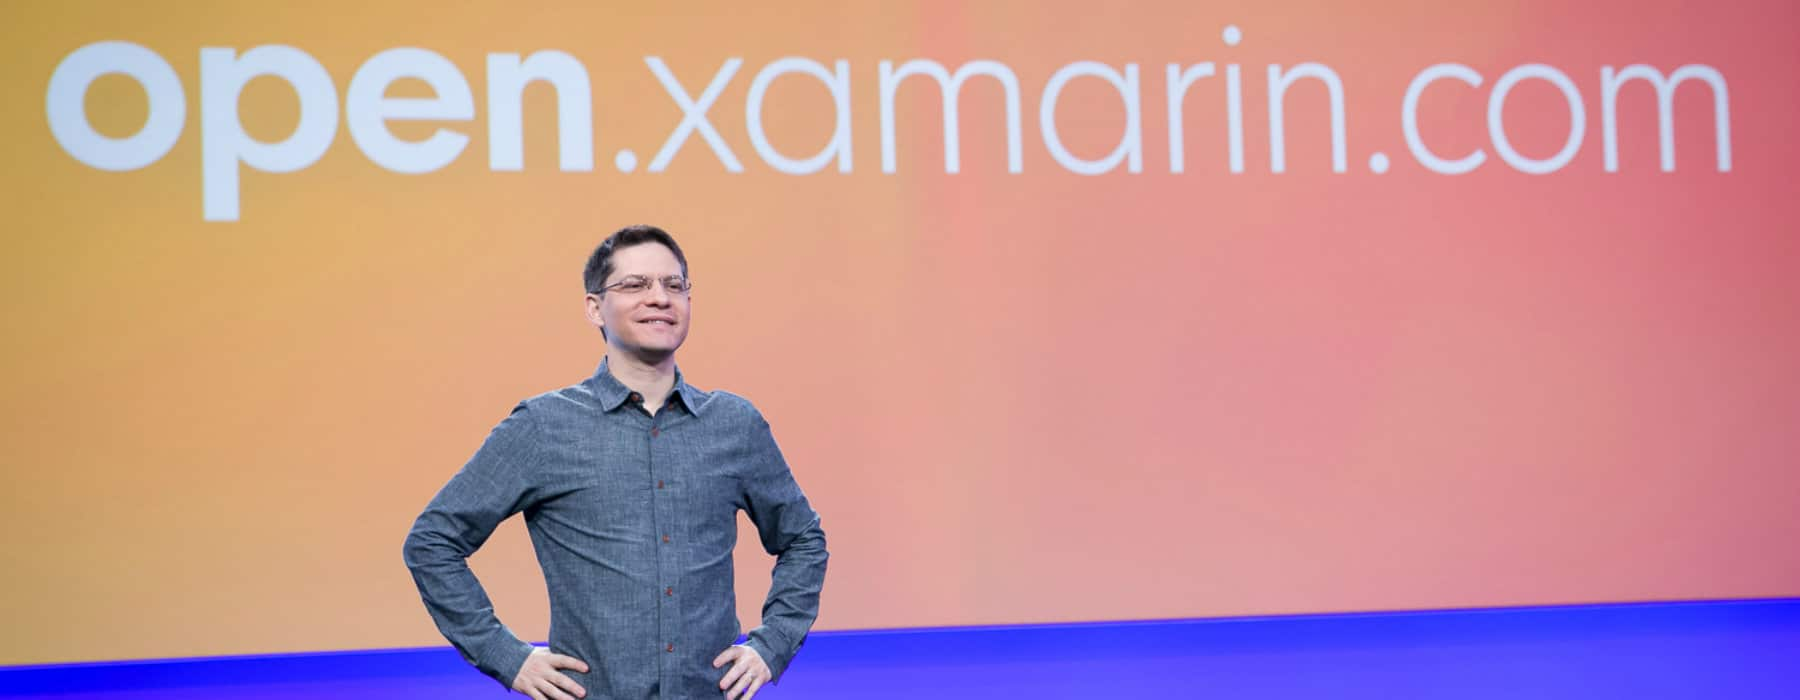 Open Source Xamarin